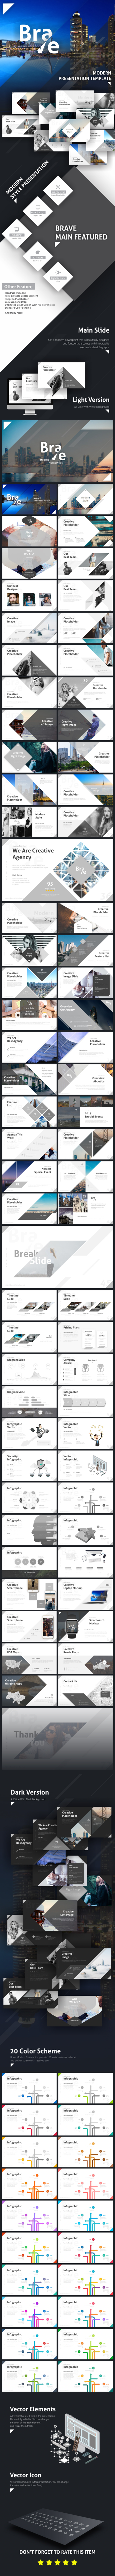 Brave Modern Presentation Template - Business PowerPoint Templates